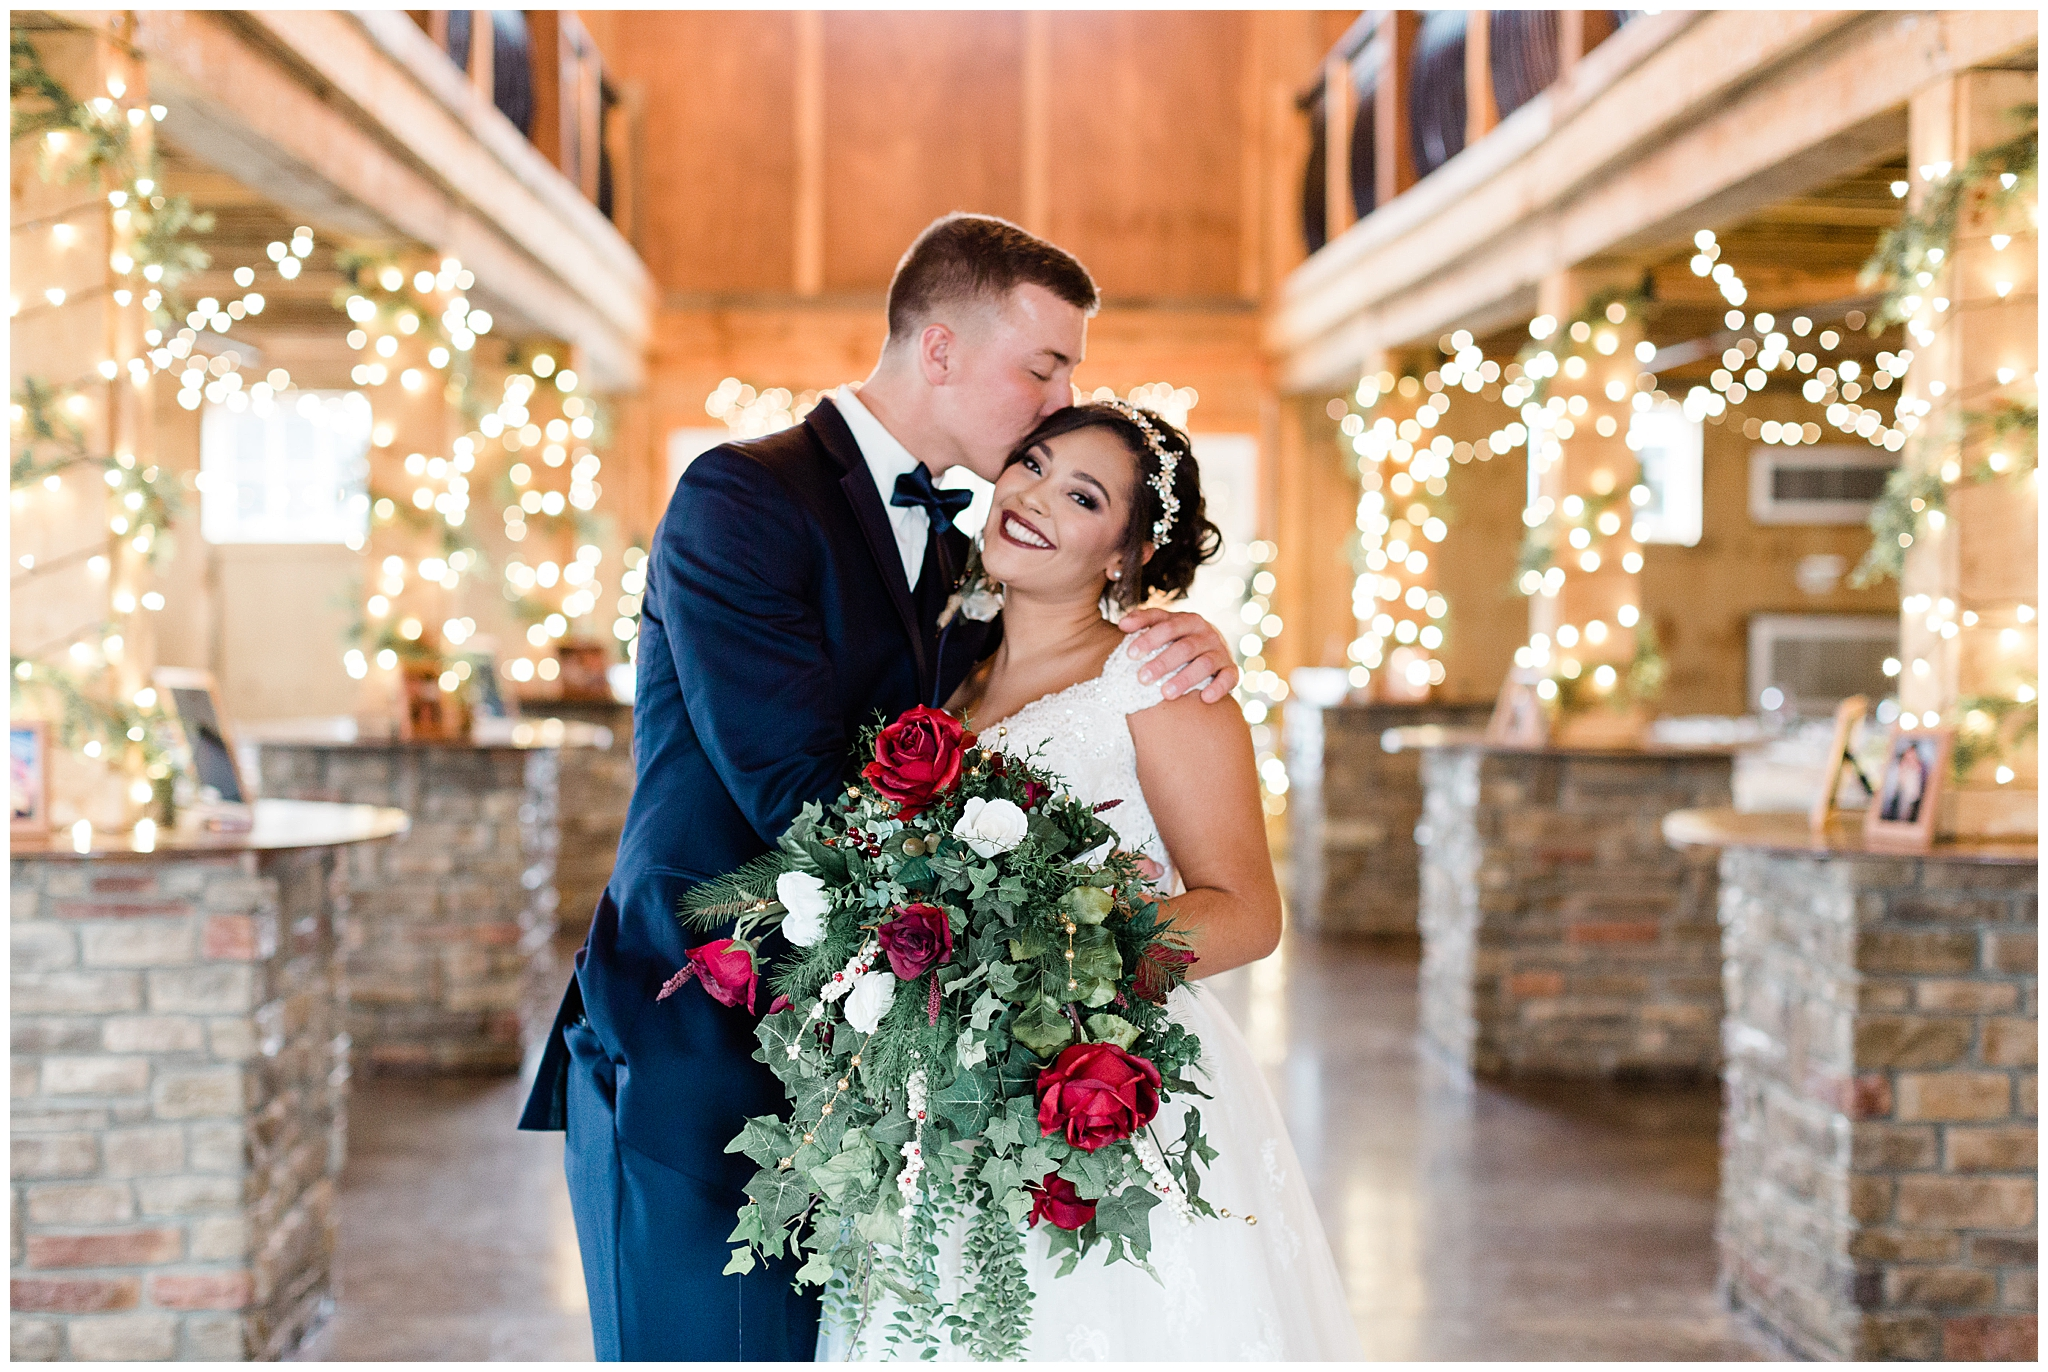 The Adkin's wedding was decked out in douglas fir and christmas lights at  The Josephina Event Venue . Dana's bouquet was filled with deep red roses and fluffed with greenery. Her dress was a stunning ivory with lace embellishments at the top, which complimented her lace and beaded headband.    The bridesmaids got ready in seasonal flannels while the groomsmen pinned on their pinecone corsages. The ceremony was held at Knoxville Baptist Church which was adorned with wreaths, garland and a massive christmas tree. The bridal squad walked down the aisle in gorgeous David's Bridal, maroon, lace top dresses.    The ceremony was held in a huge, white barn with high rafters. Lights were wrapped around the wood and stone poles and a chandelier hung in the middle of the dance floor. The Adkin's ended the night dancing while being surrounded by those they love most!